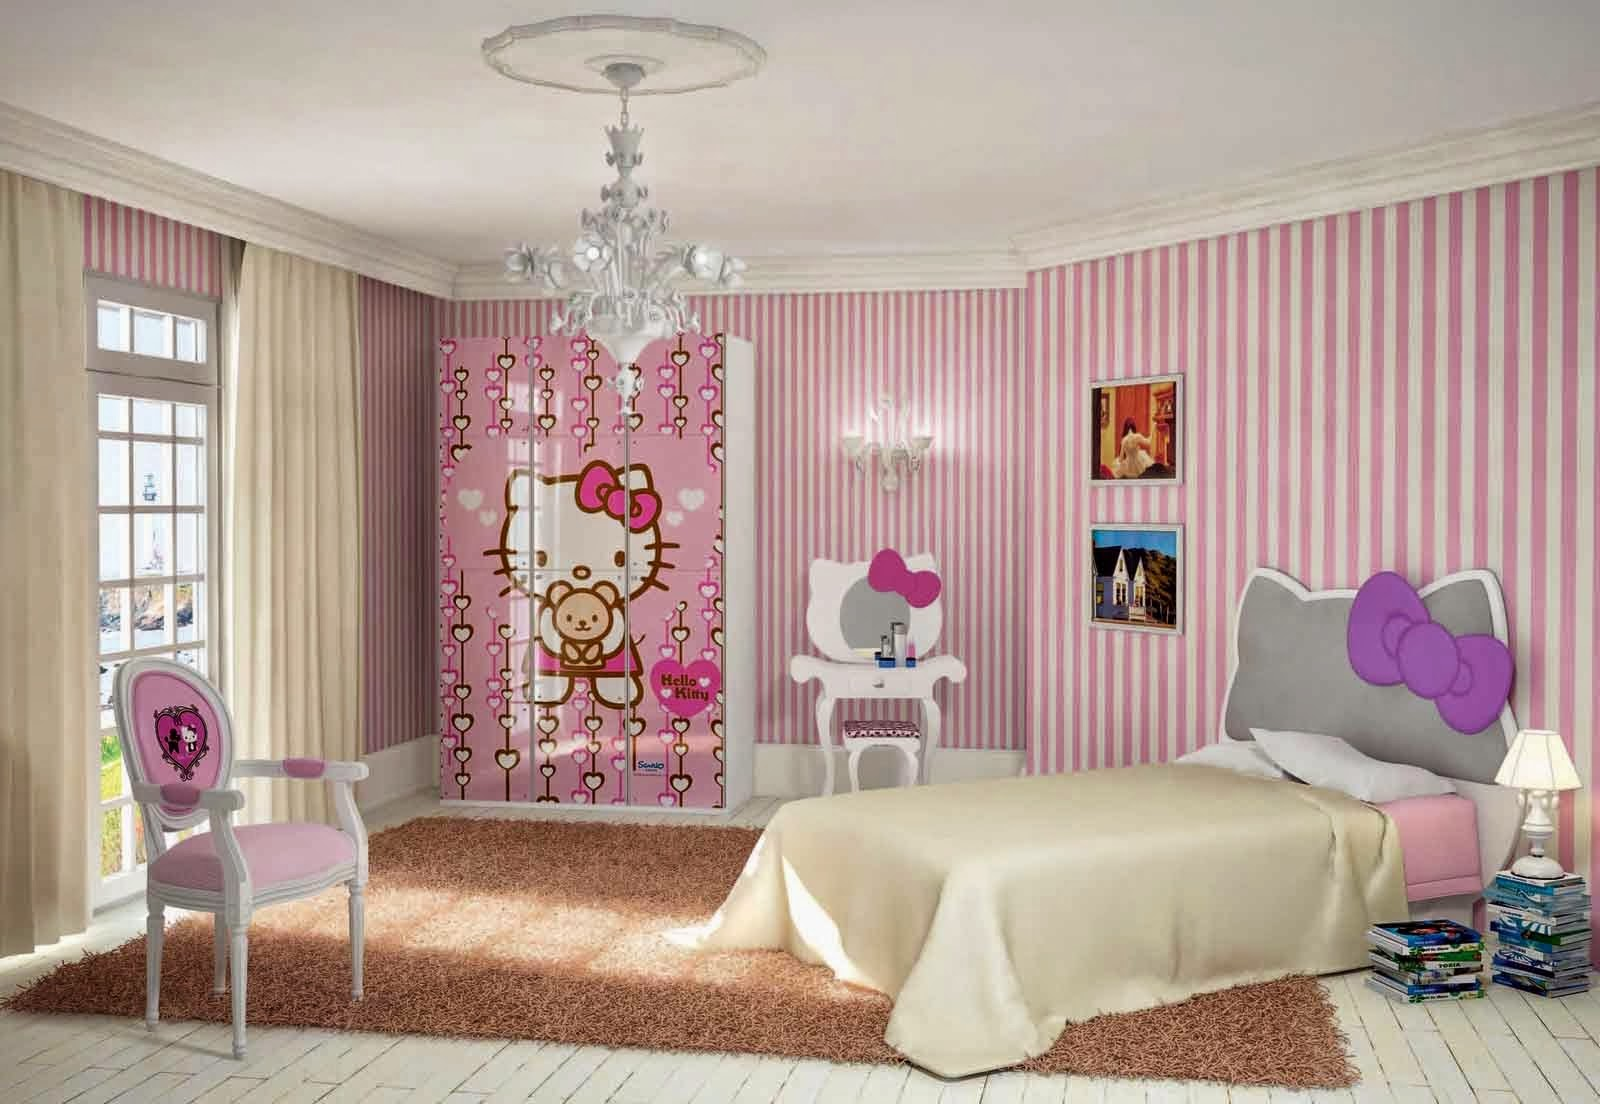 Bedroom interior design hello kitty 2015 home inspirations for 2015 bedroom designs